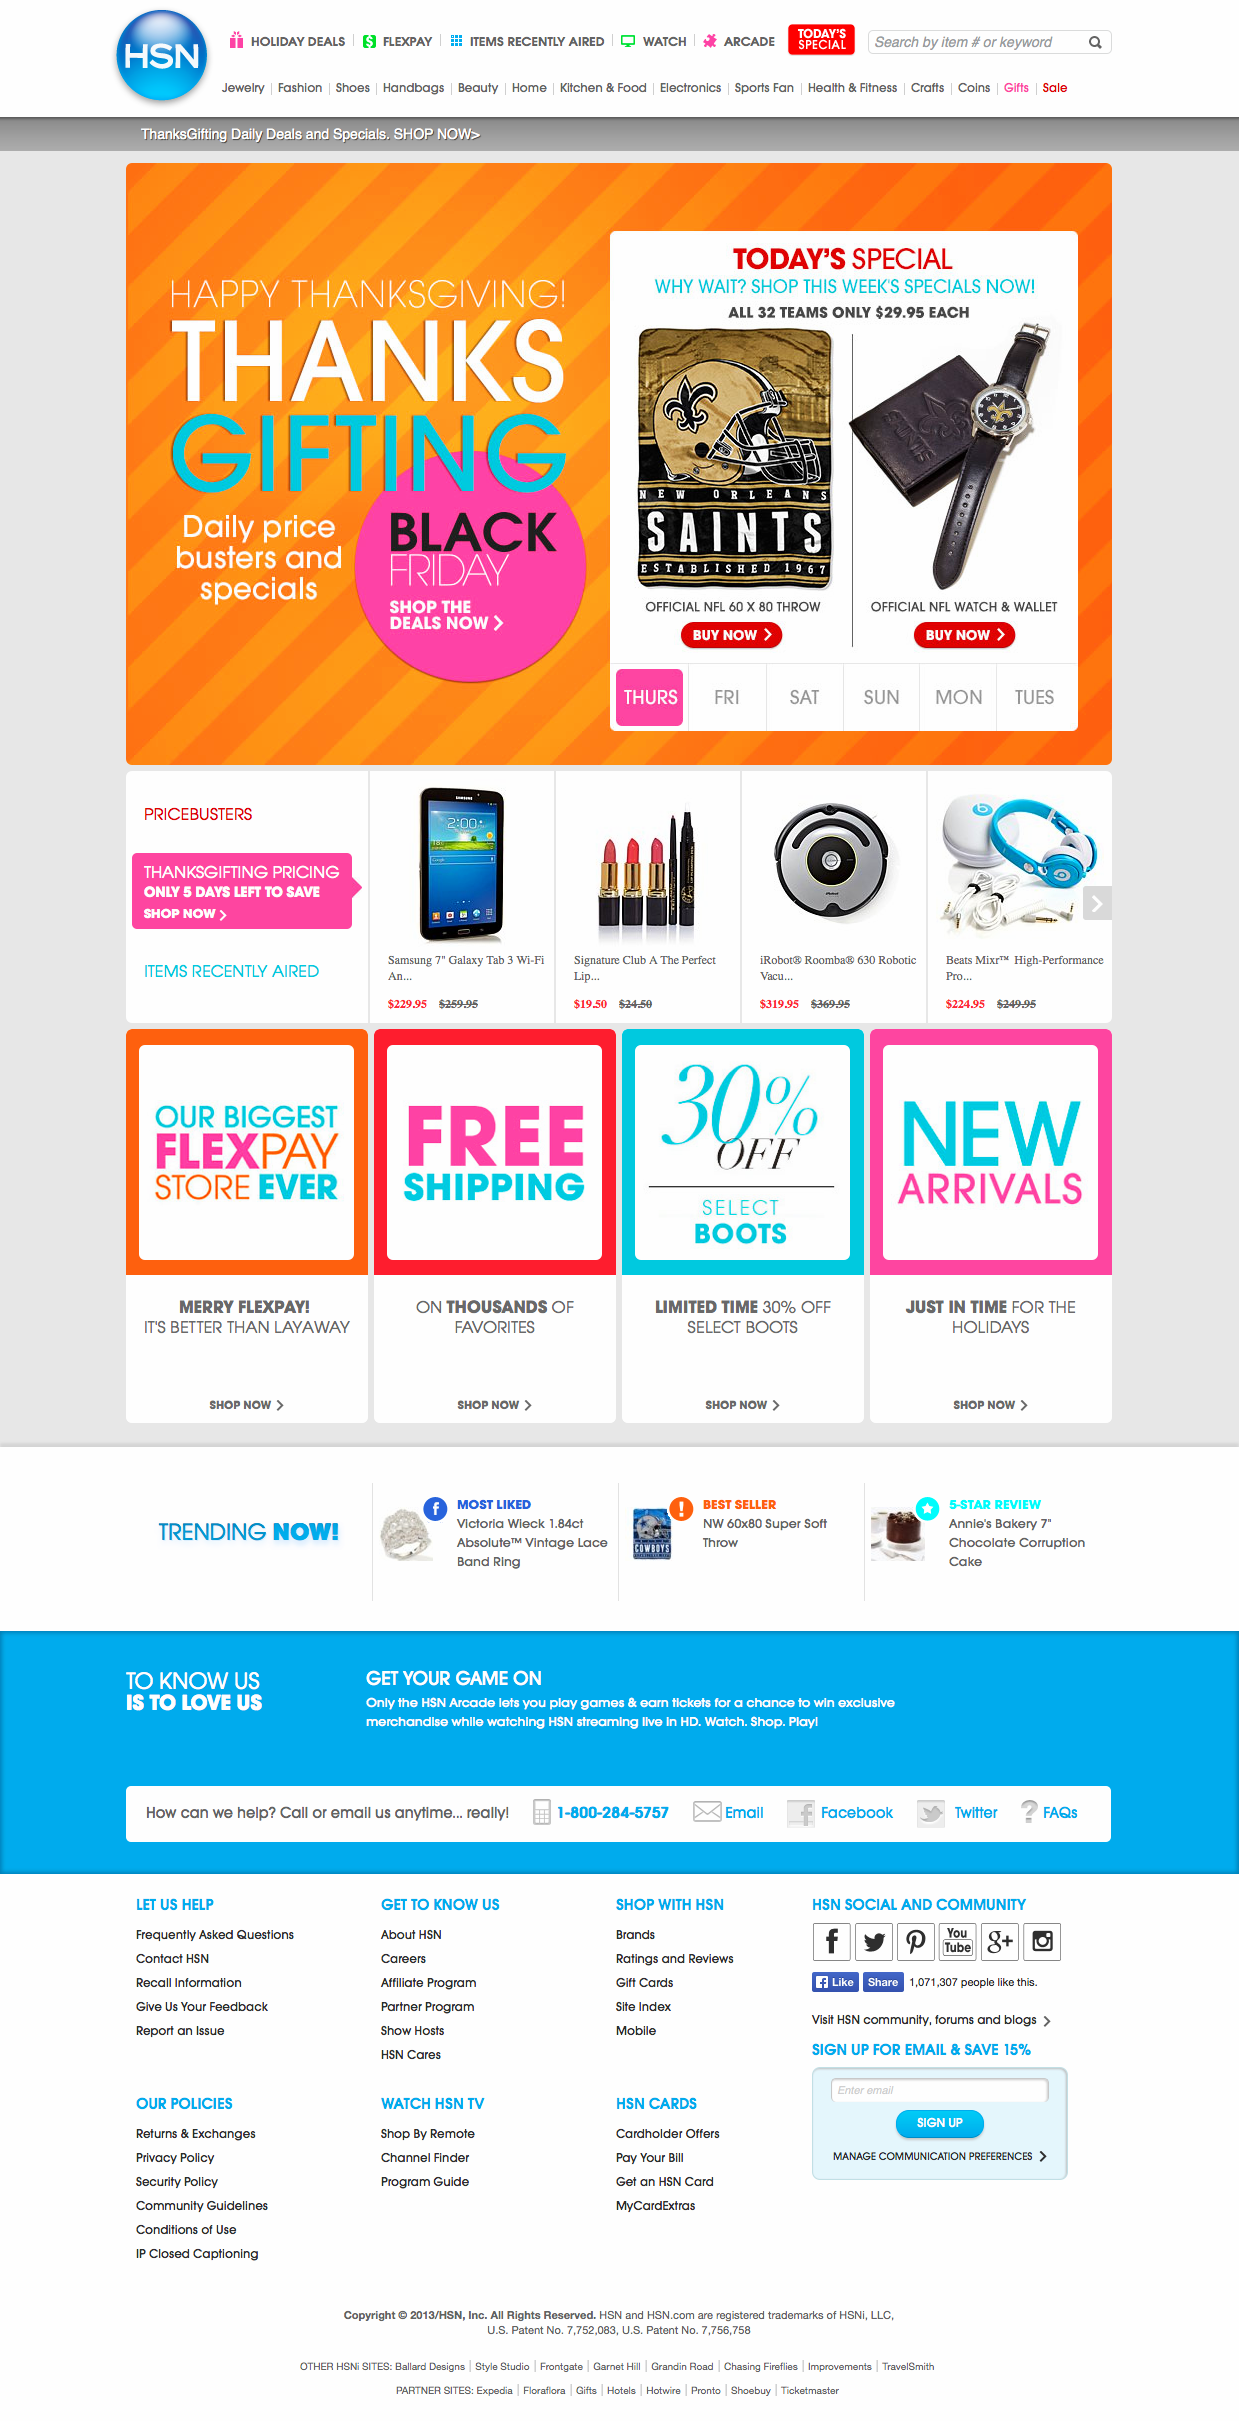 HSN.com Landing Page.png